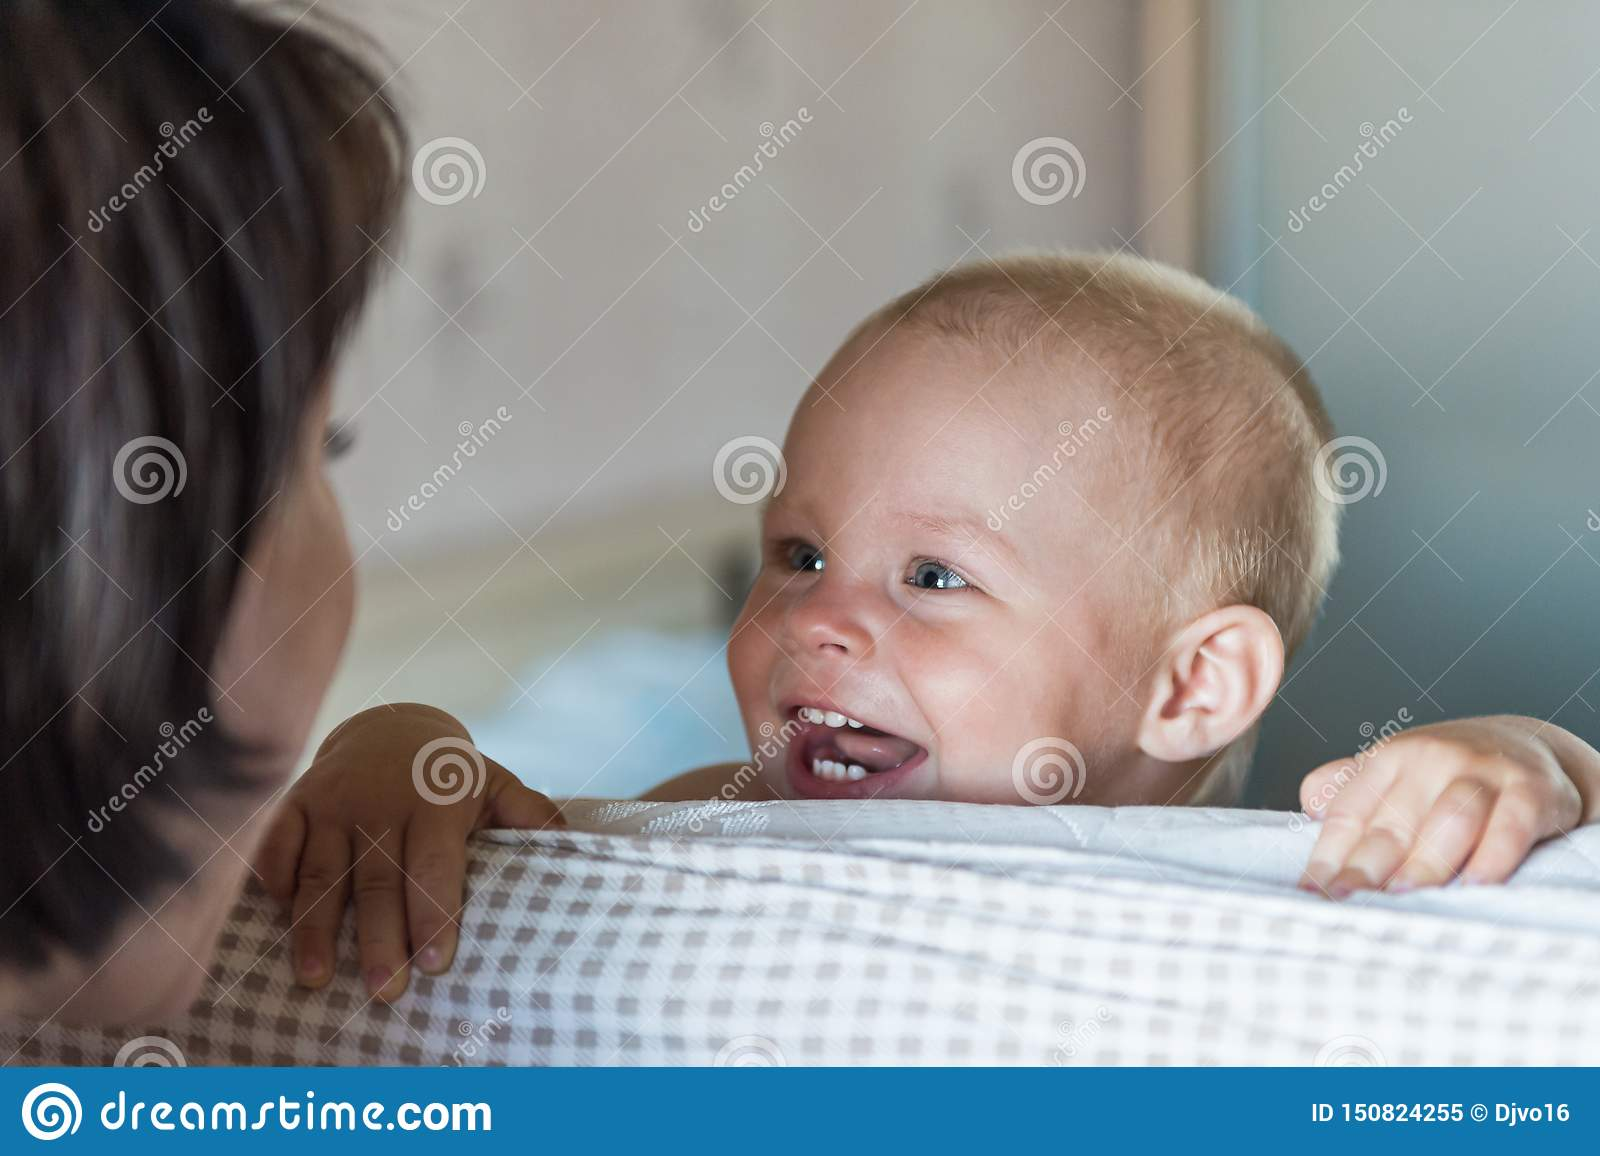 Little toddler boy playing on the bed. Cute kid smiling and hiding under cover. Palyful and mischievous eyes. Hide-and-seek.